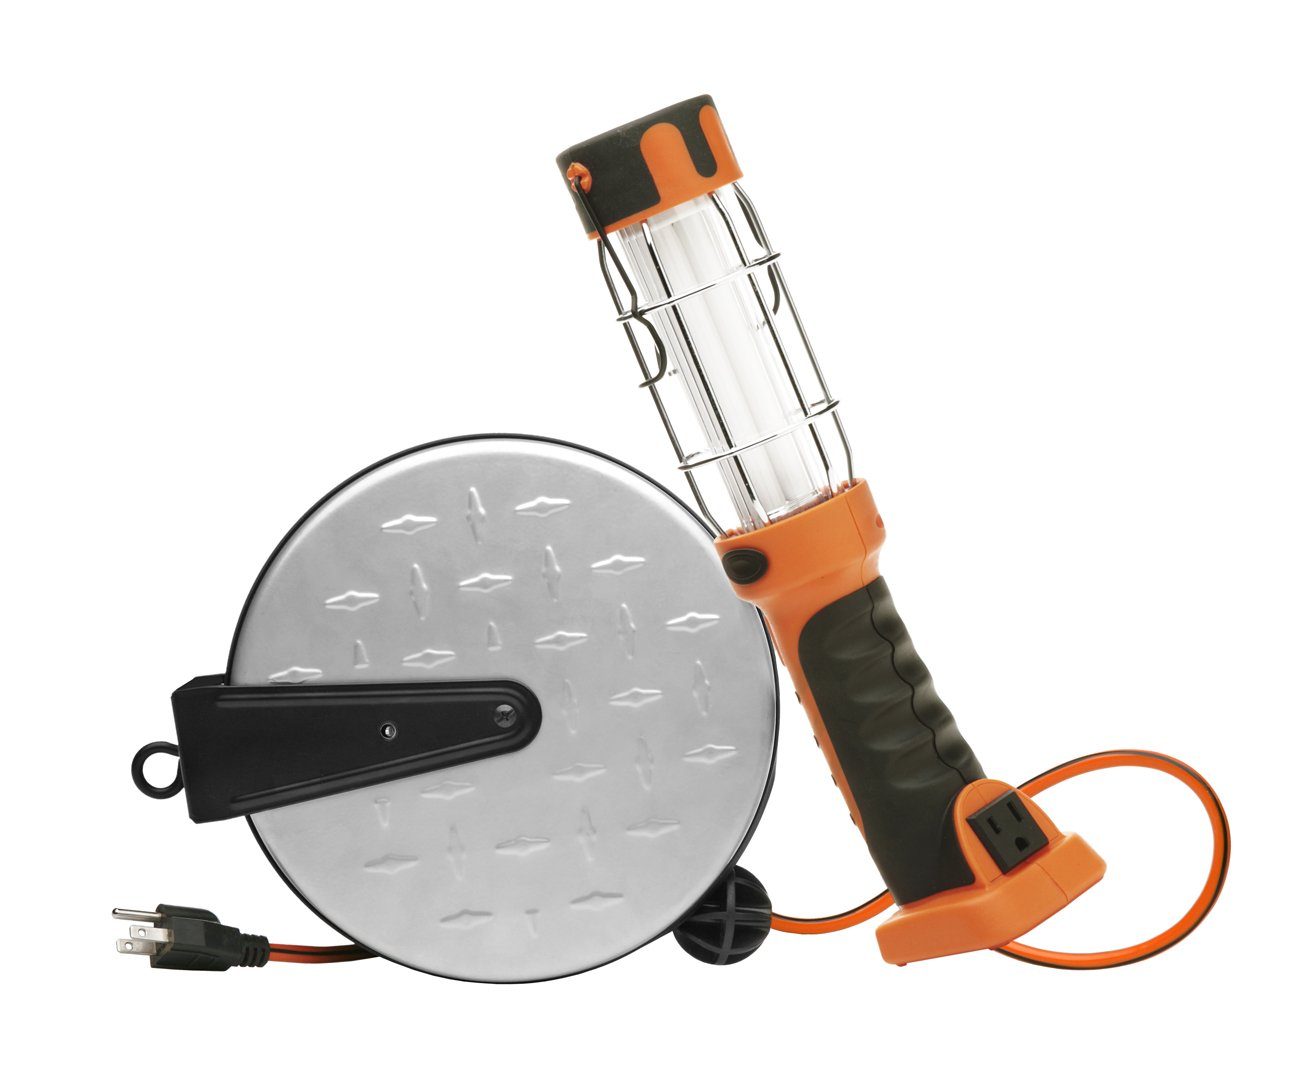 Designers Edge E318 Retractable Extension Cord with Handheld Work Light, Fluorescent, 30-Foot